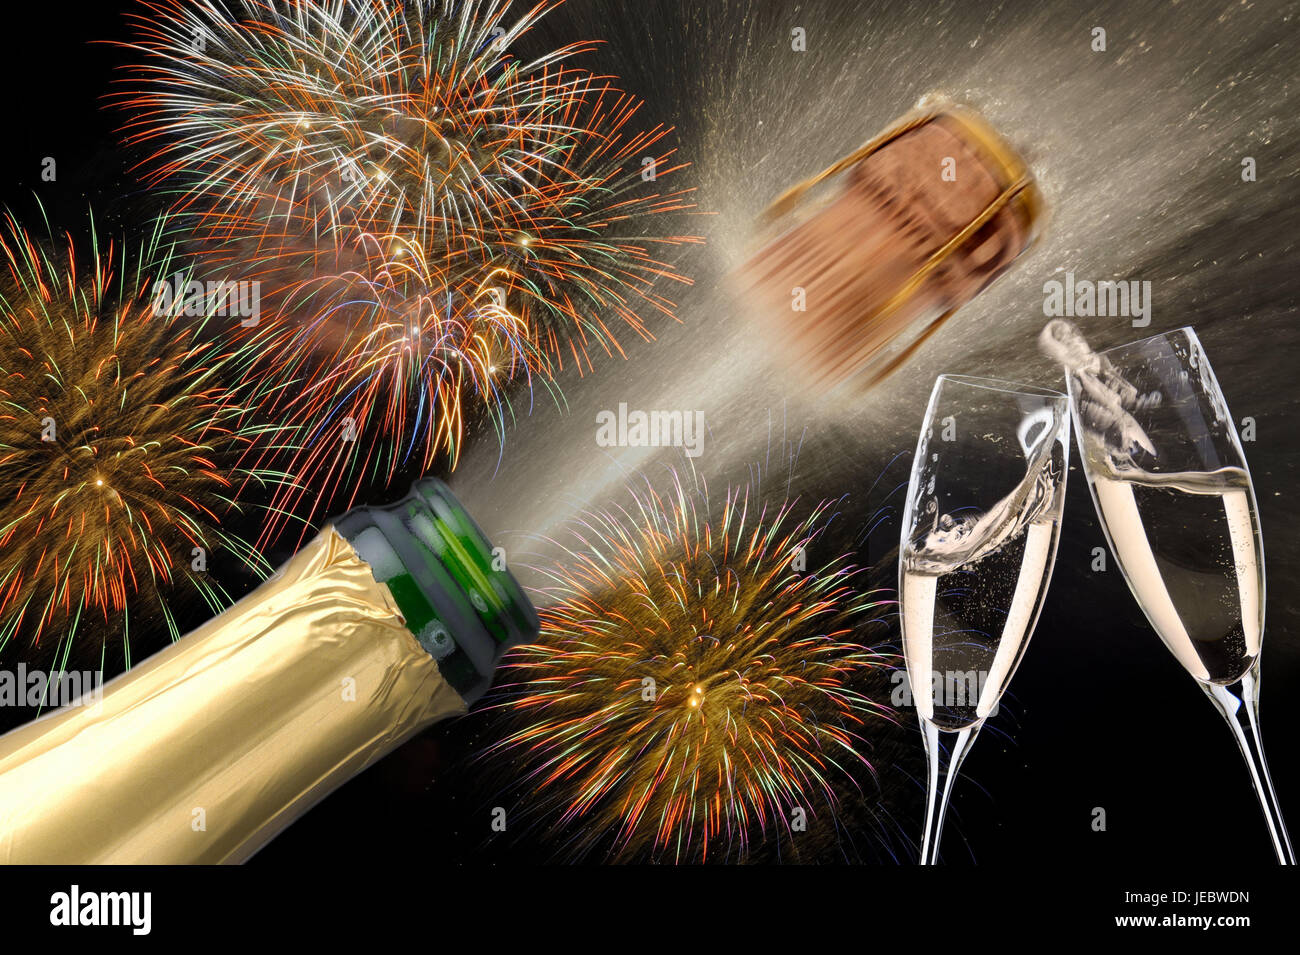 New Year's Eves, corks, belt, champagne glasses, fireworks, New Year, champagne, New Year, party, New Year party, - Stock Image